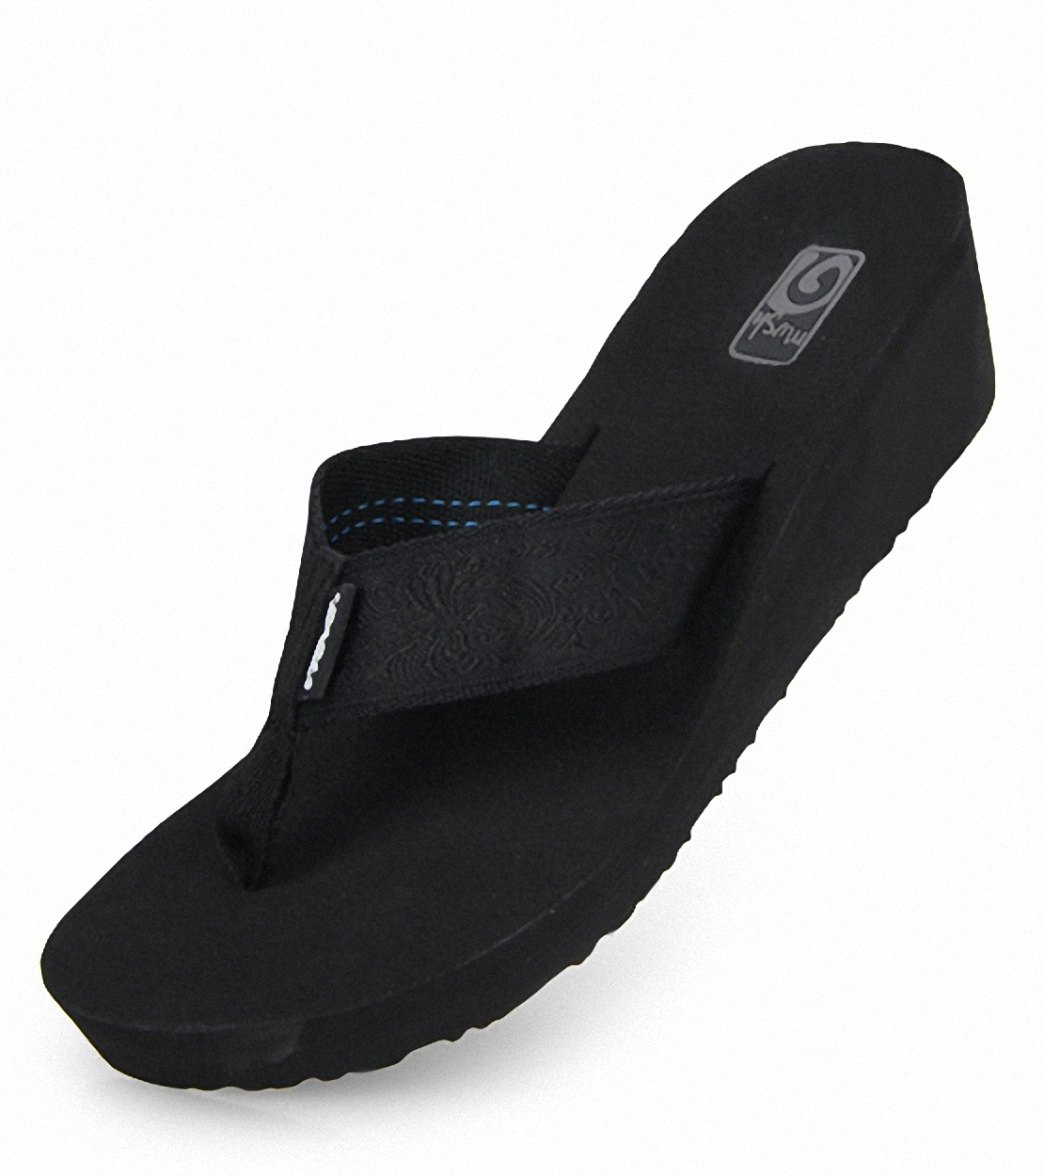 4c9b9676b035 Teva Women s Mush Mandalyn Wedge II Sandal at SwimOutlet.com